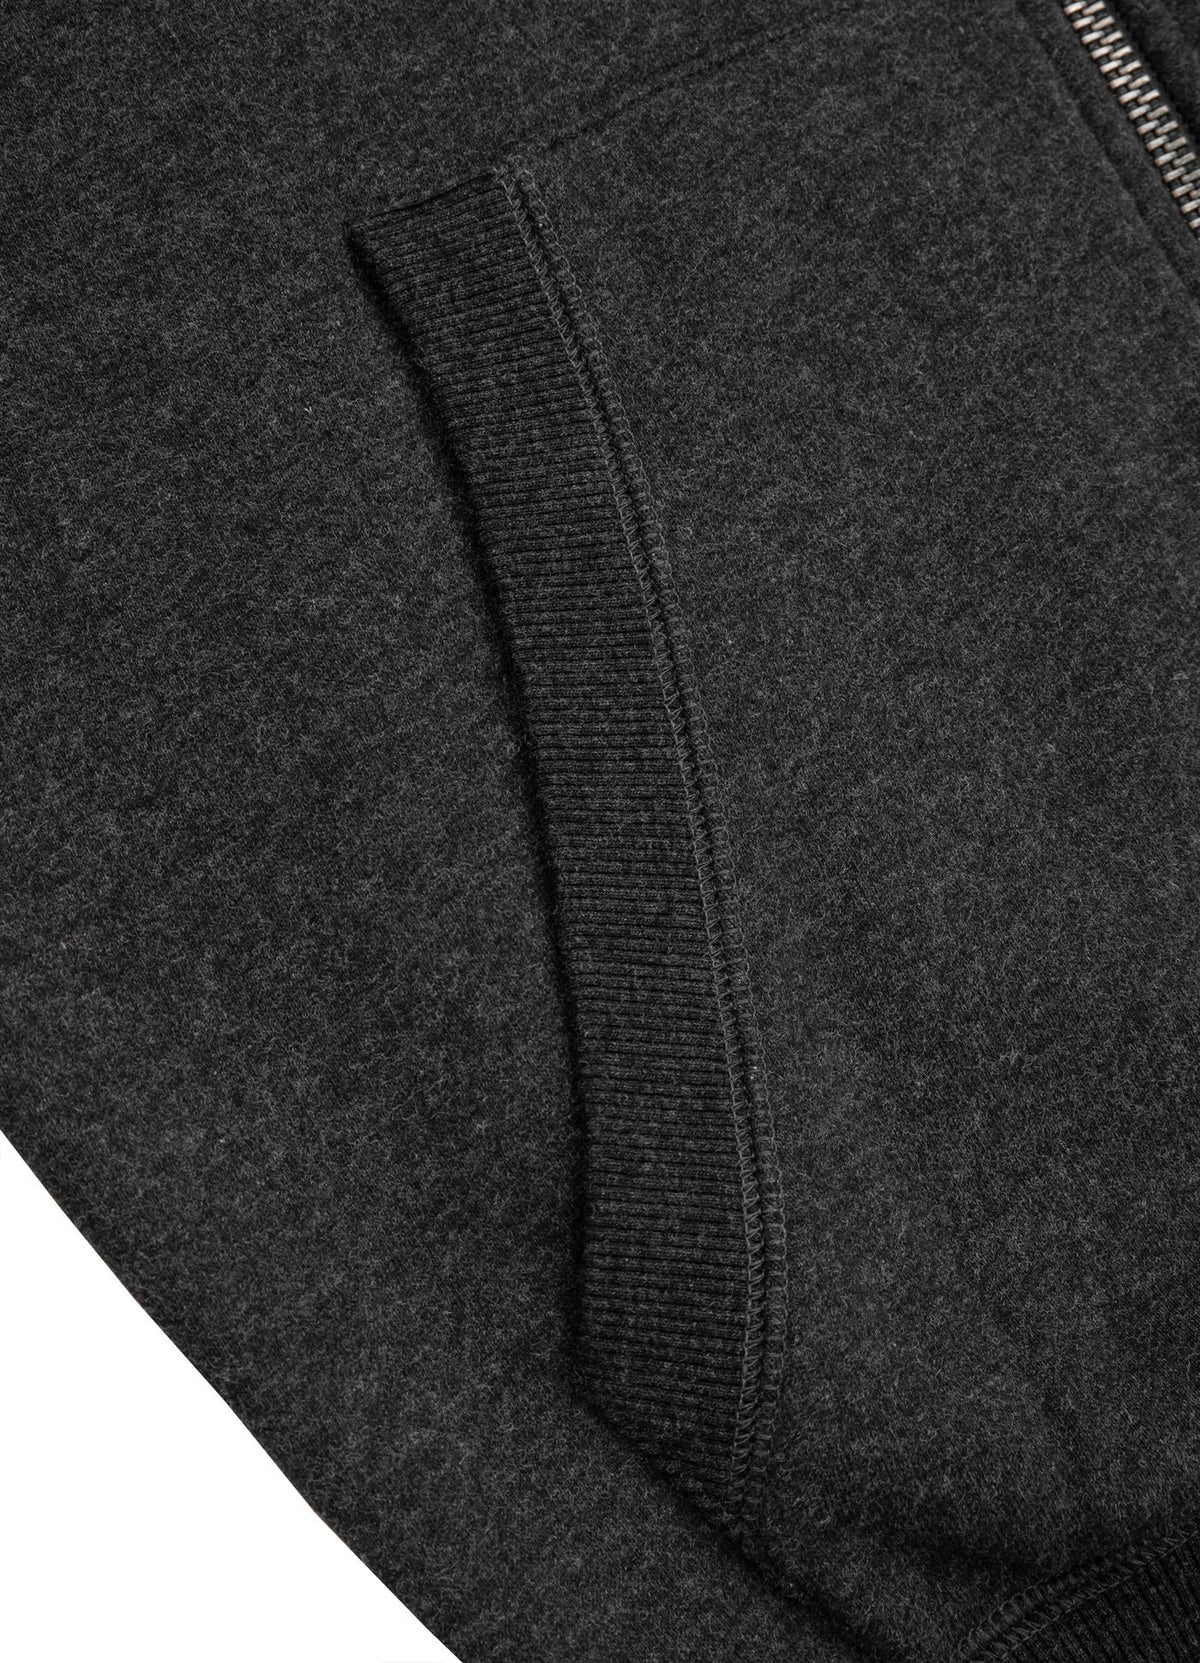 HOODED ZIP SMALL LOGO 2020 CHARCOAL